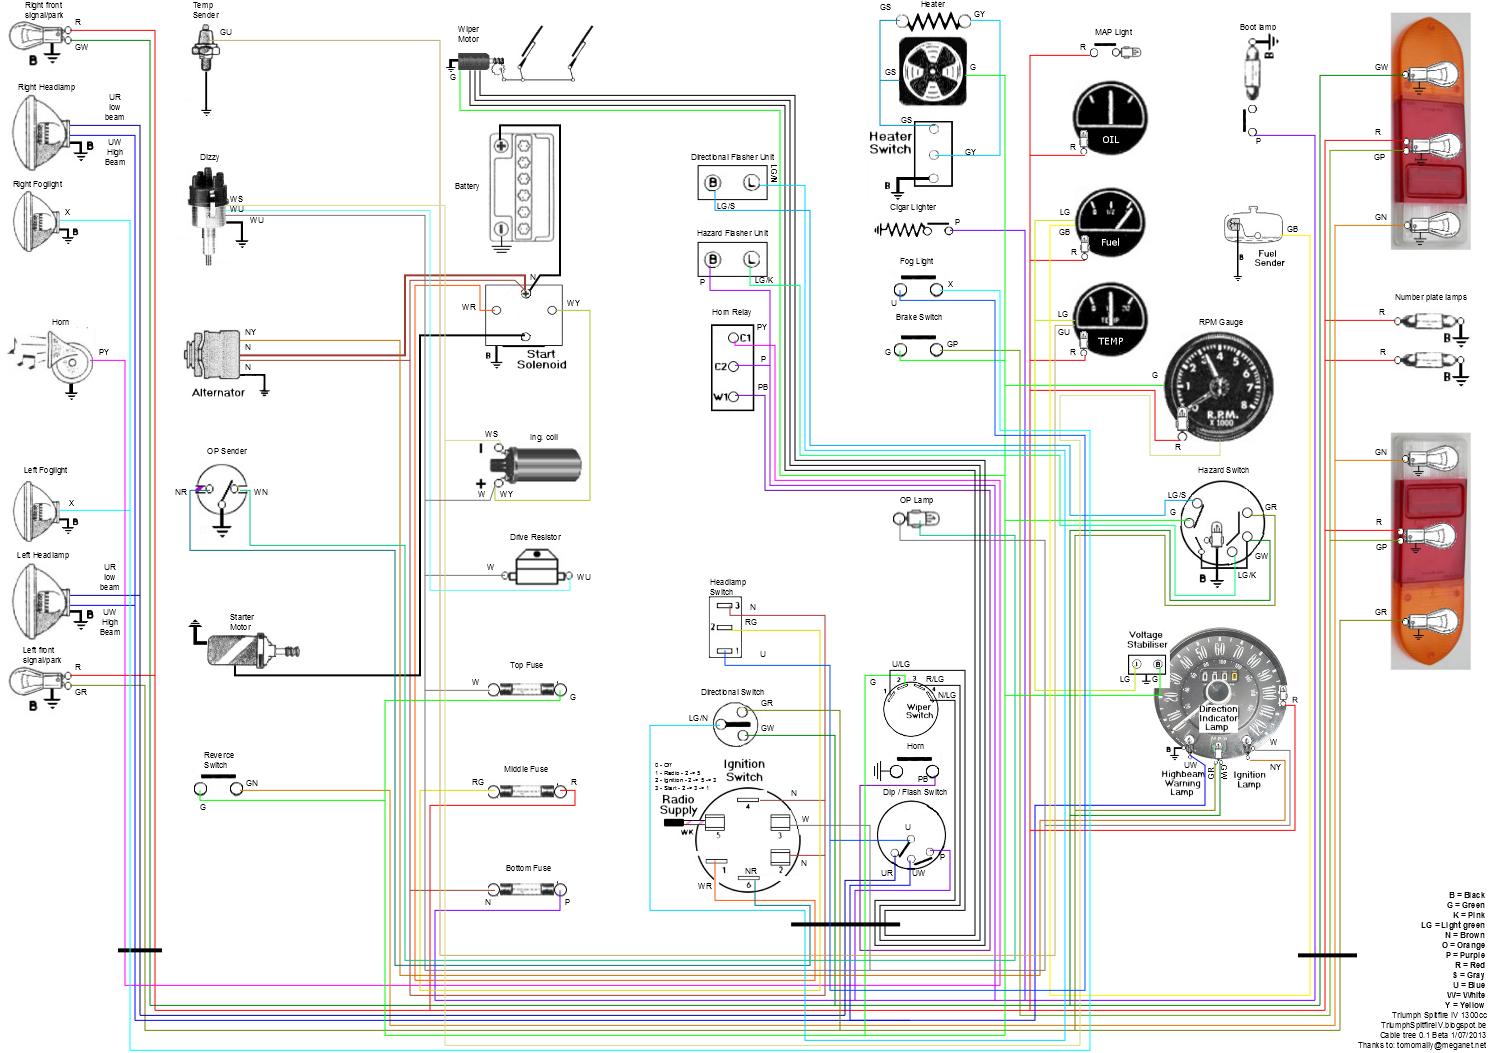 1972 triumph bonneville wiring diagram 2004 international 4300 starter tr3a 19 stromoeko de 66 spitfire blog data rh 1 11 tefolia